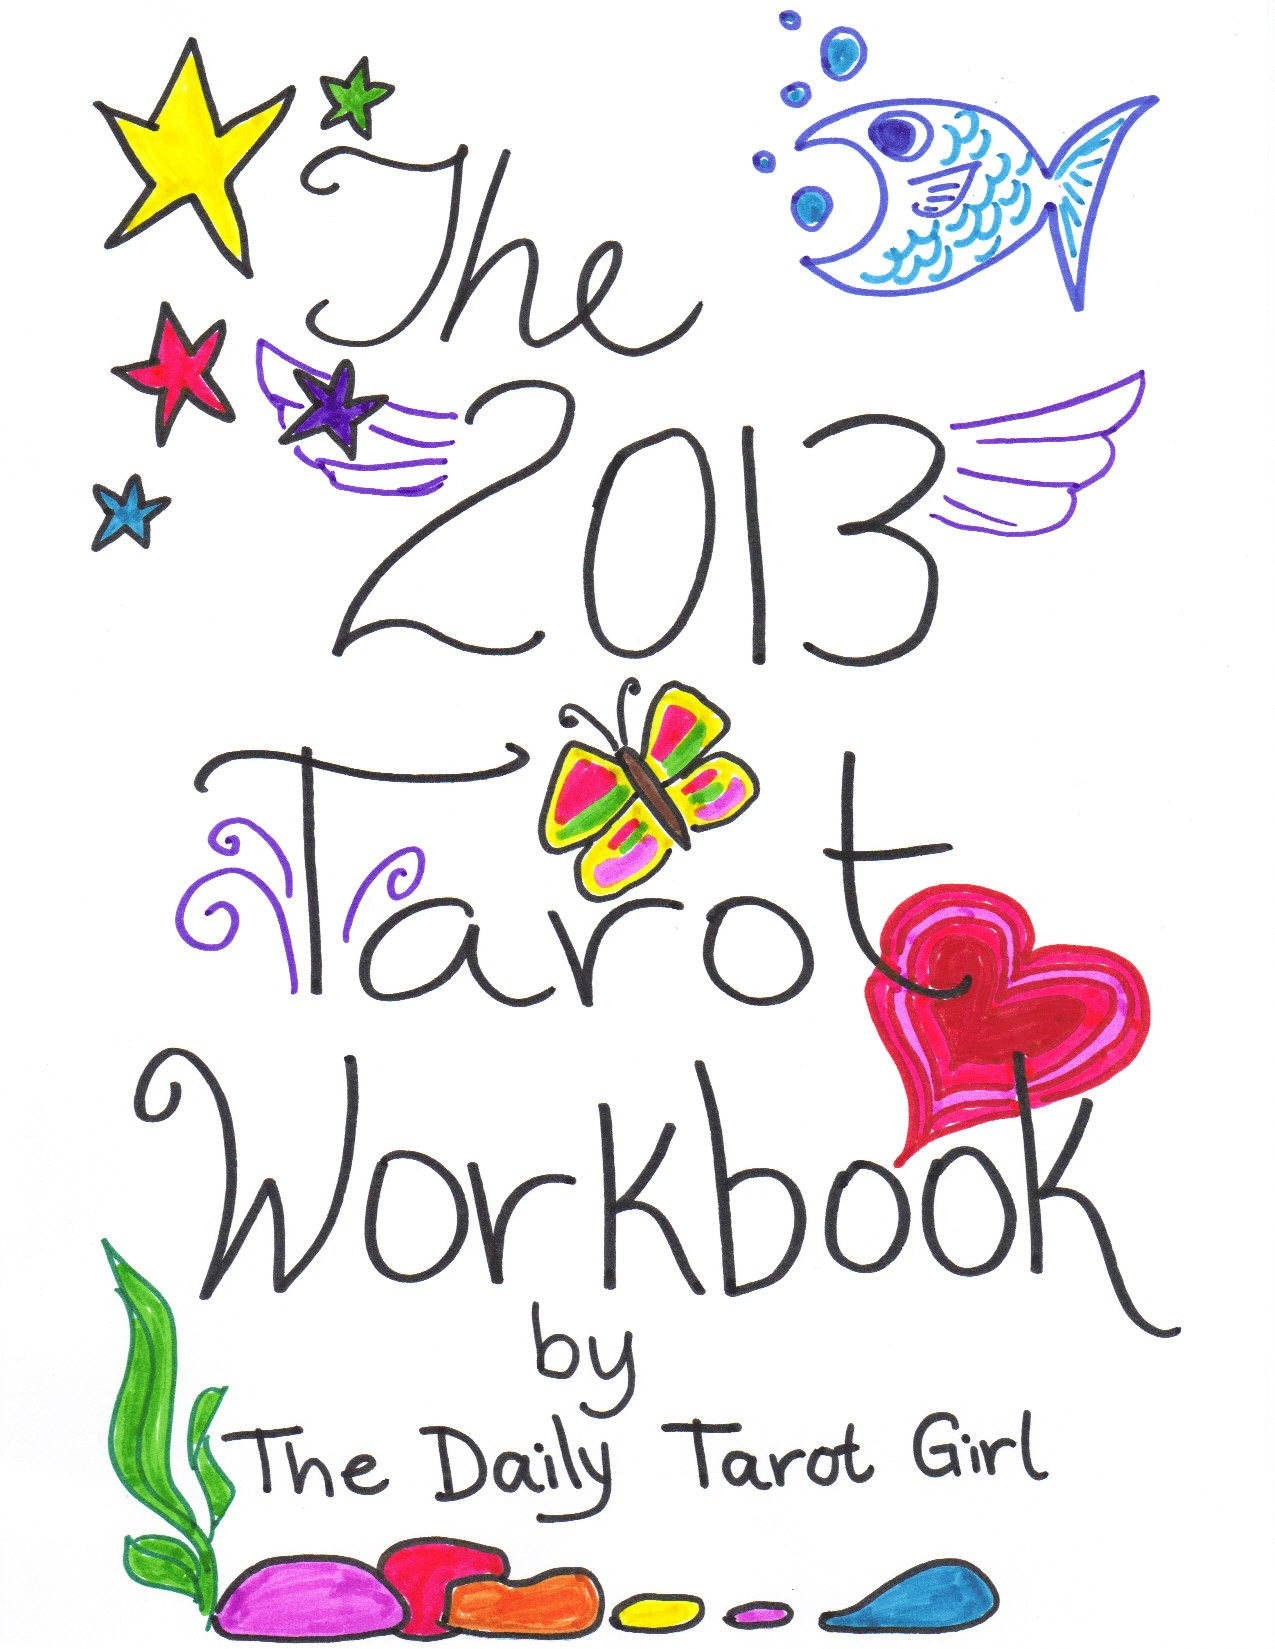 Day 7 of 12:  Leading from Womb. Indulging in Slow Goal Setting for 2013 with a Tarot Workbook